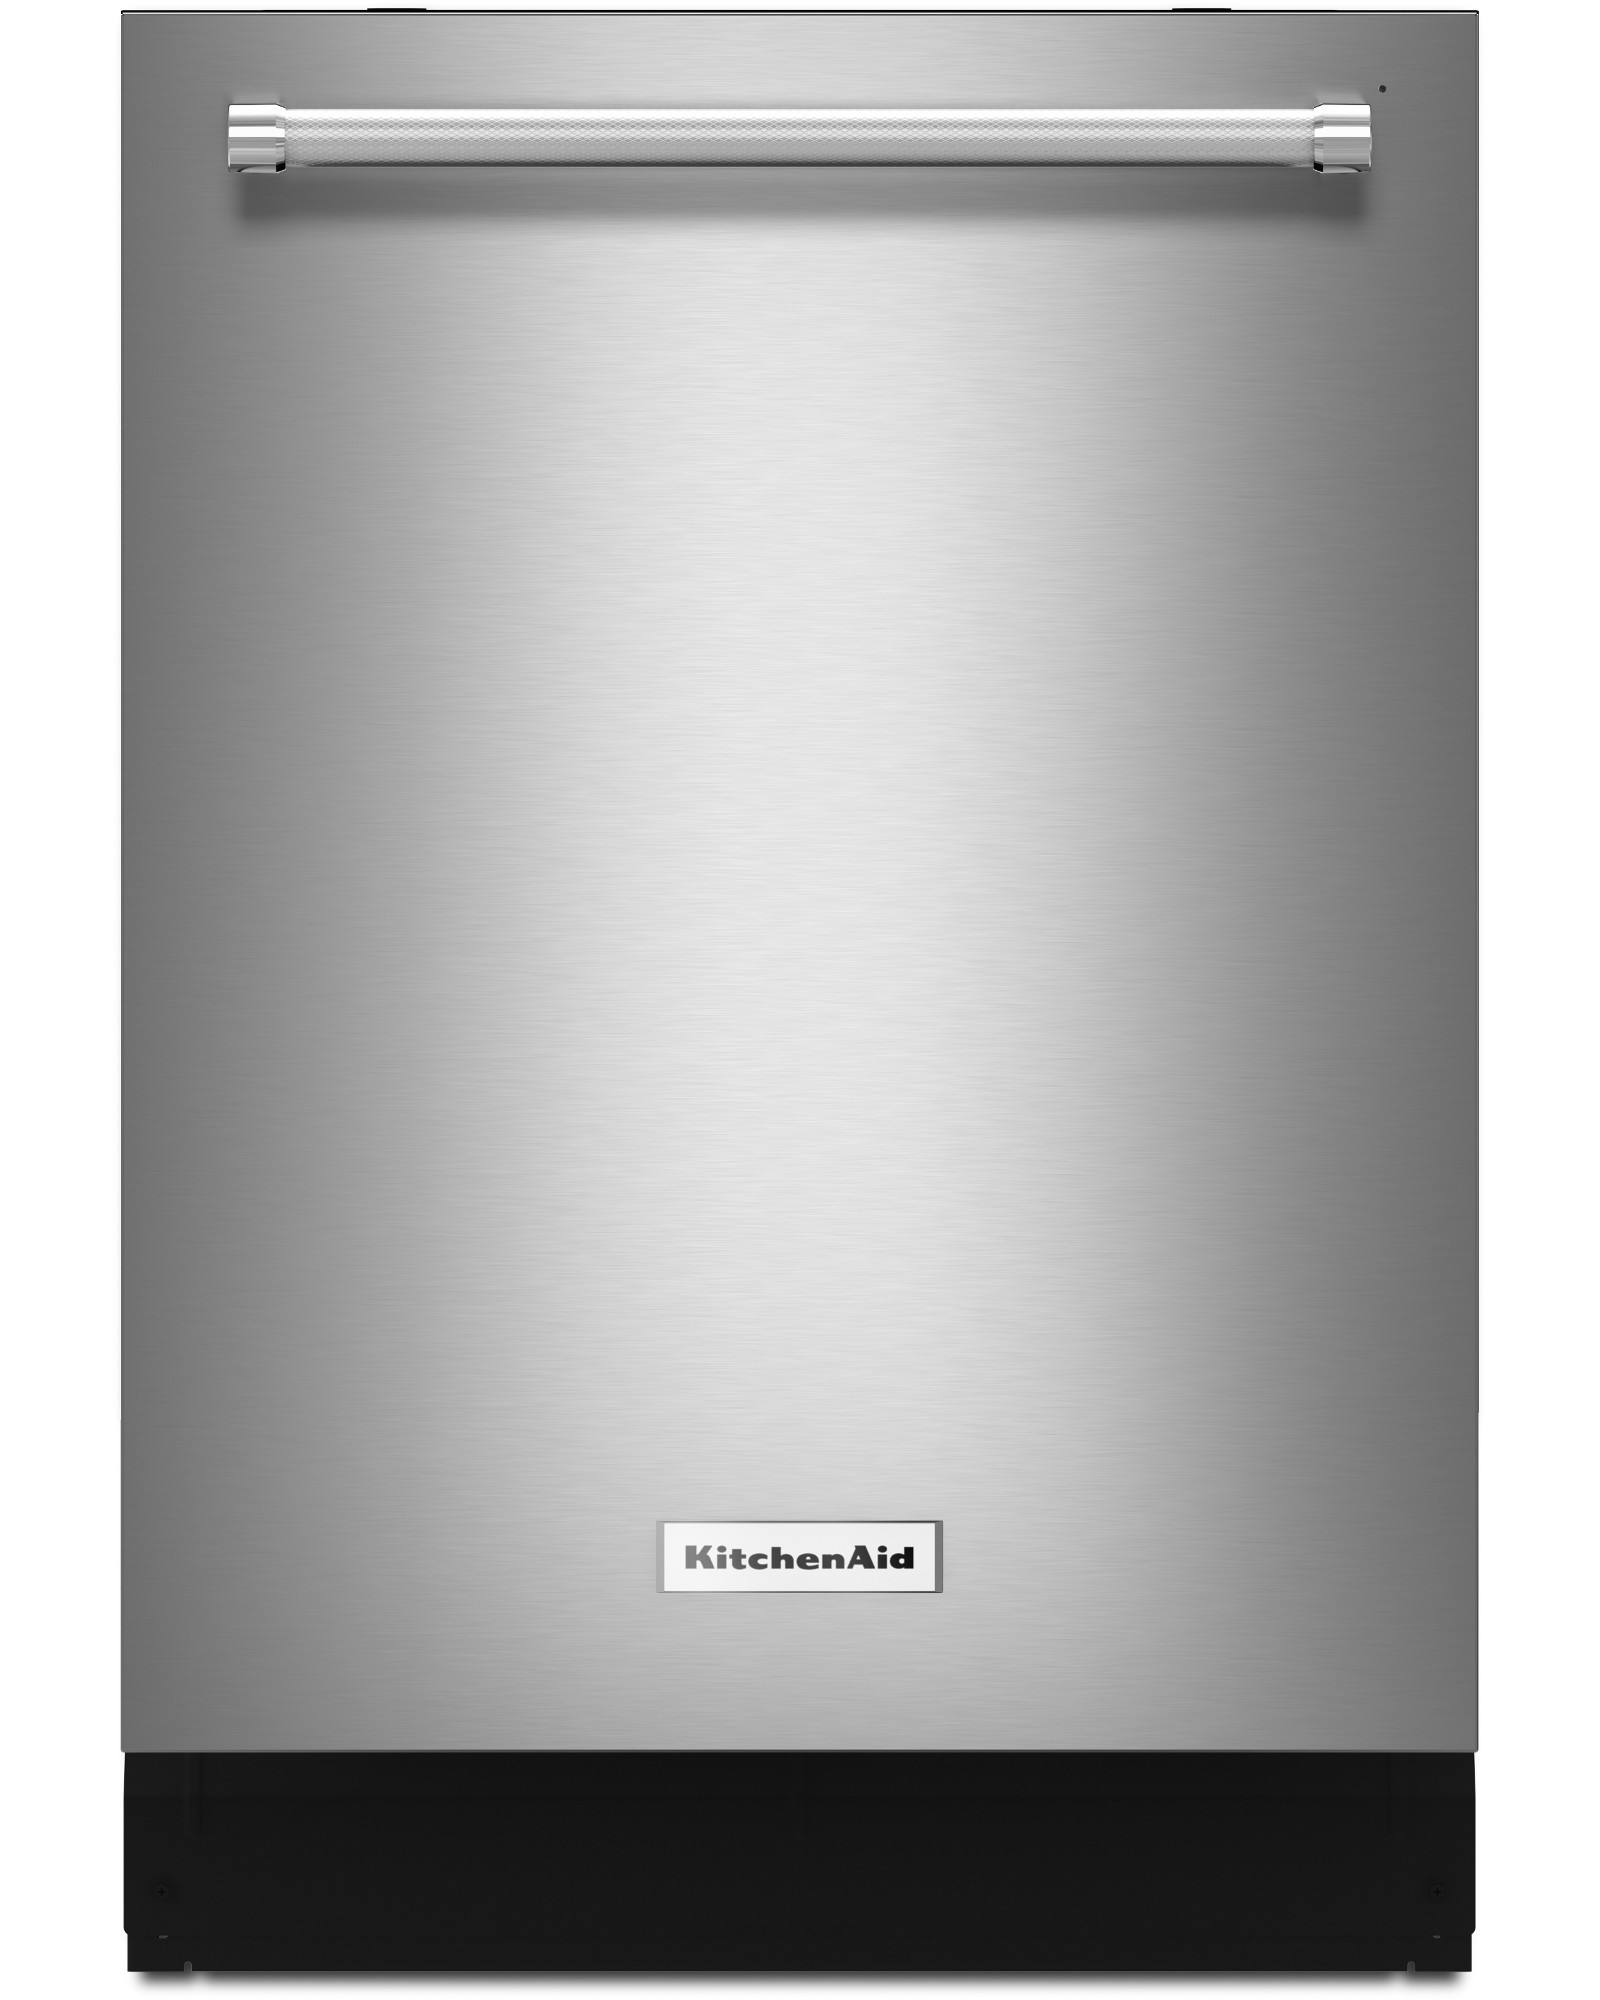 KDTE204ESS-24-Top-Control-Built-In-Dishwasher-Stainless-Steel